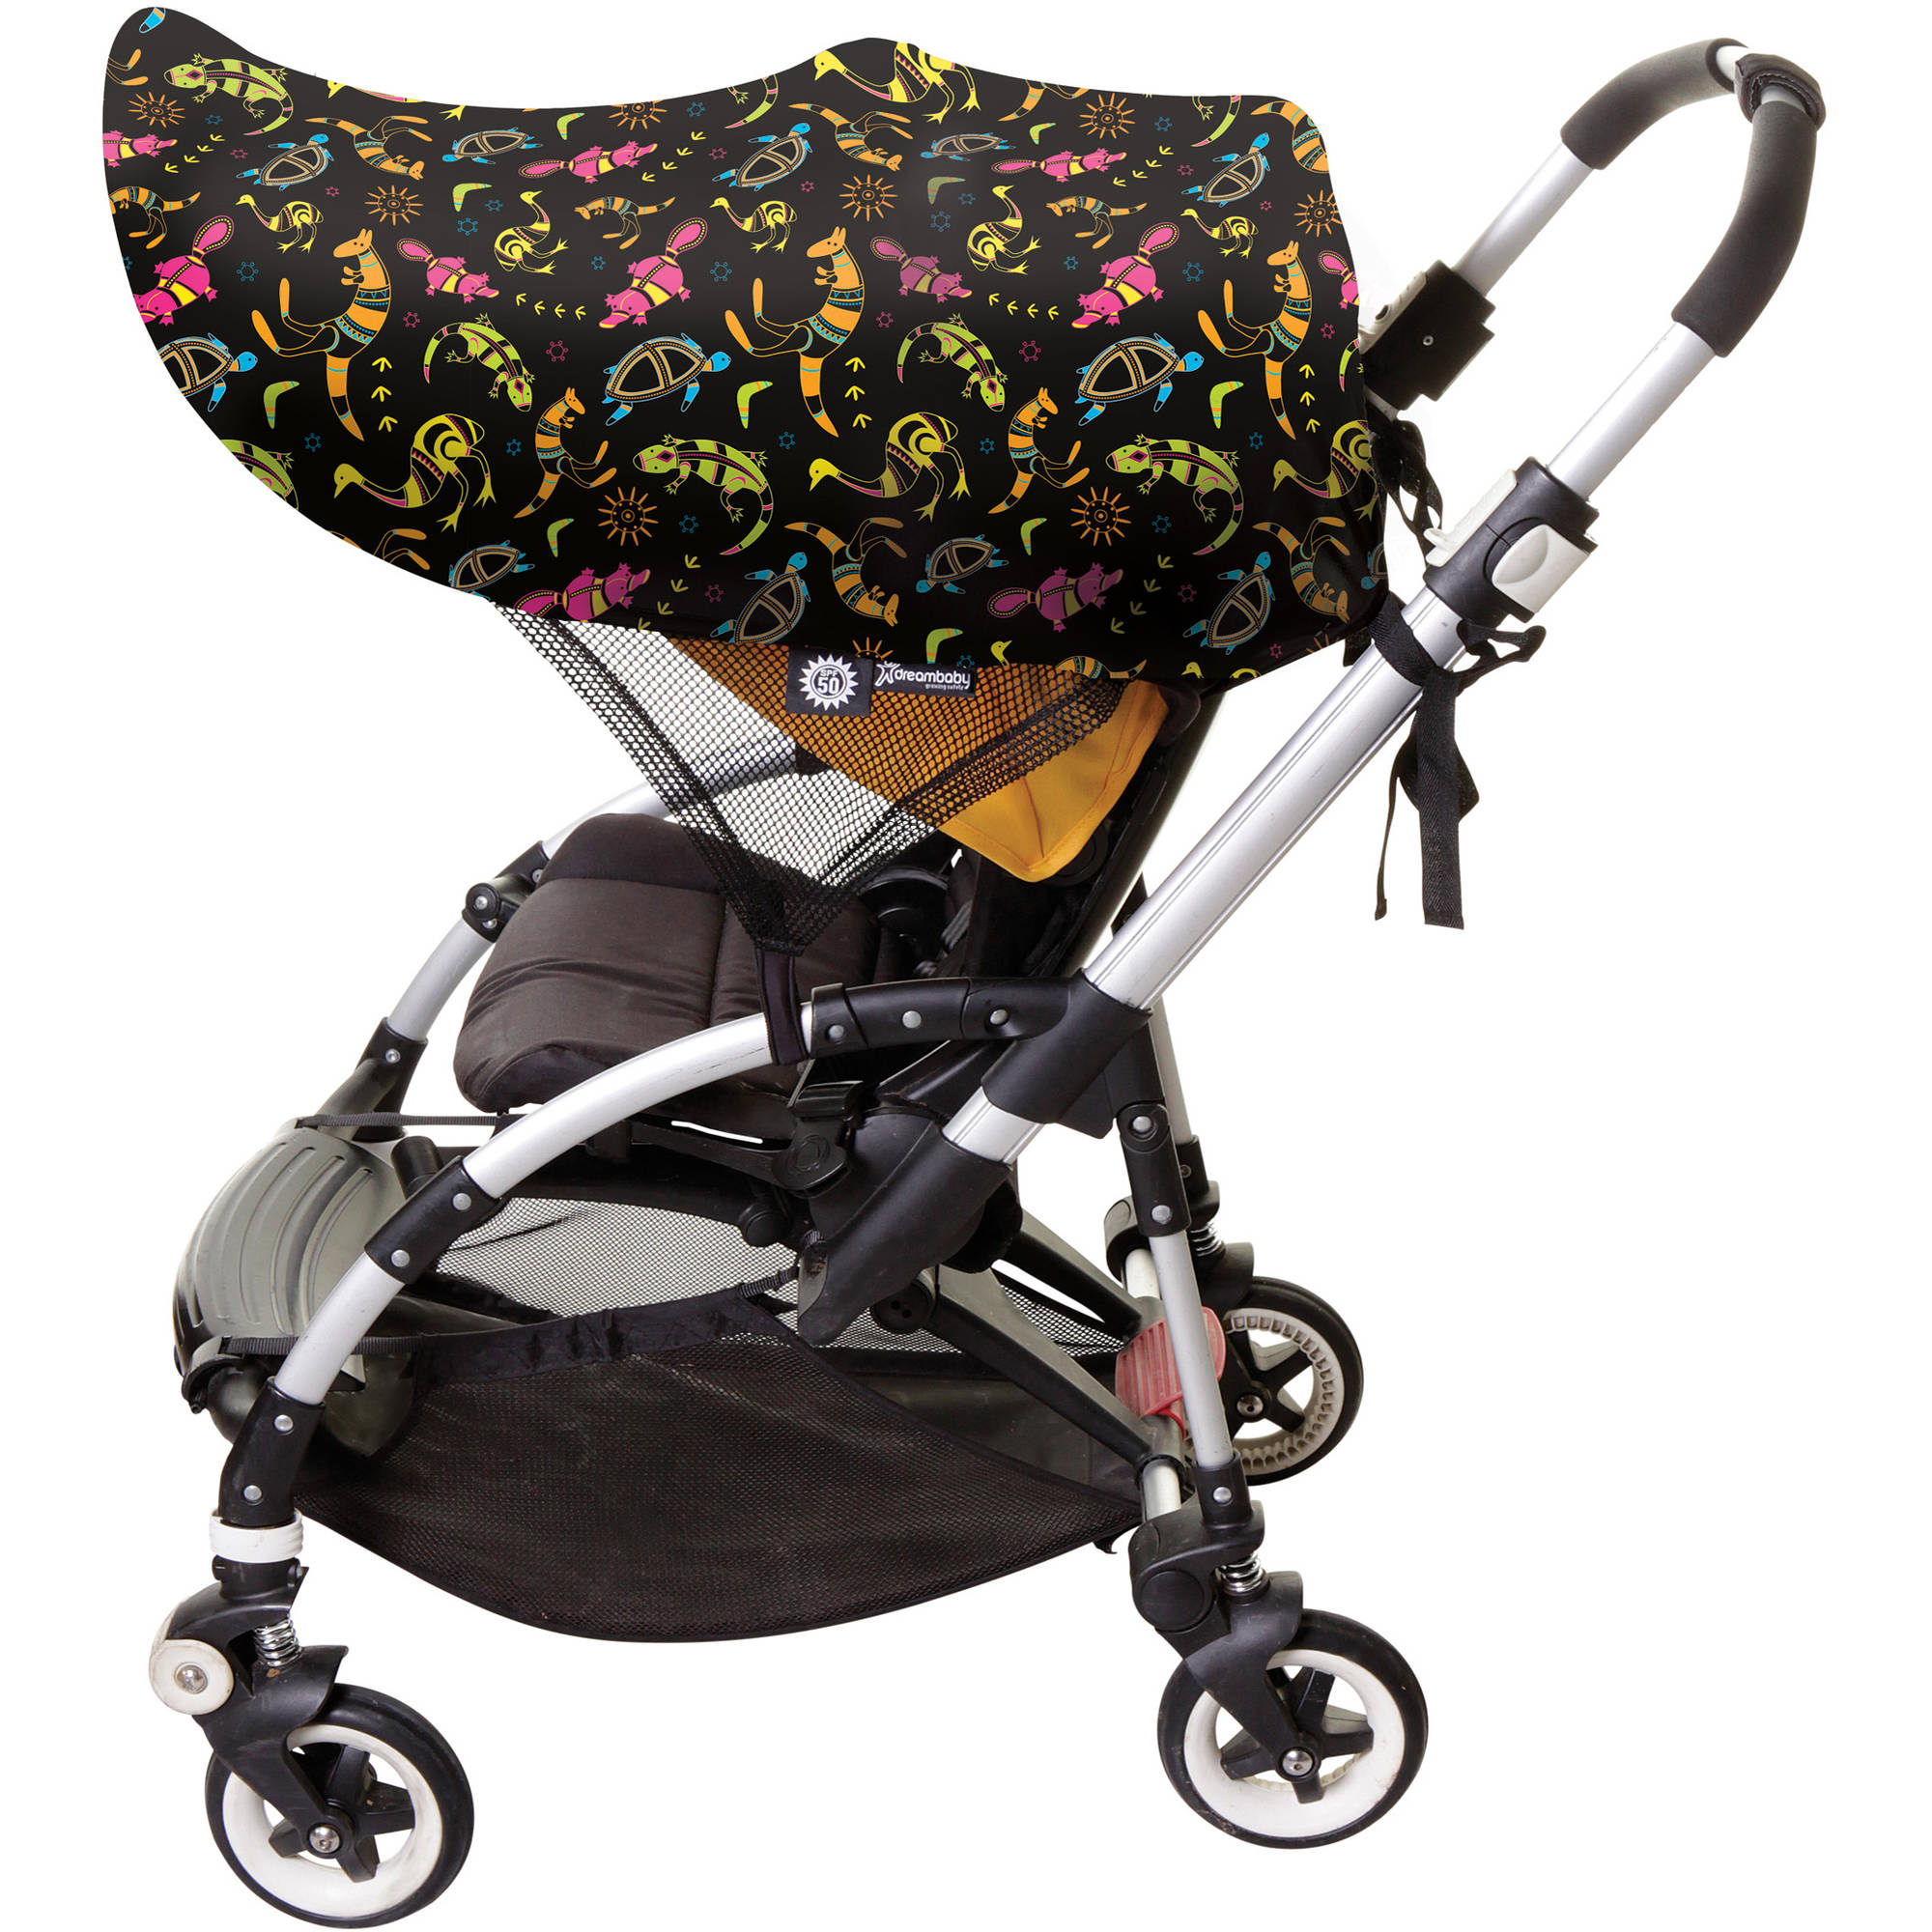 Stroller Canopy Extension And Stroller With Canopy Pink  sc 1 th 225 & Chicco Stroller Extension | Bandalou The Best Place To Find Gear For ...